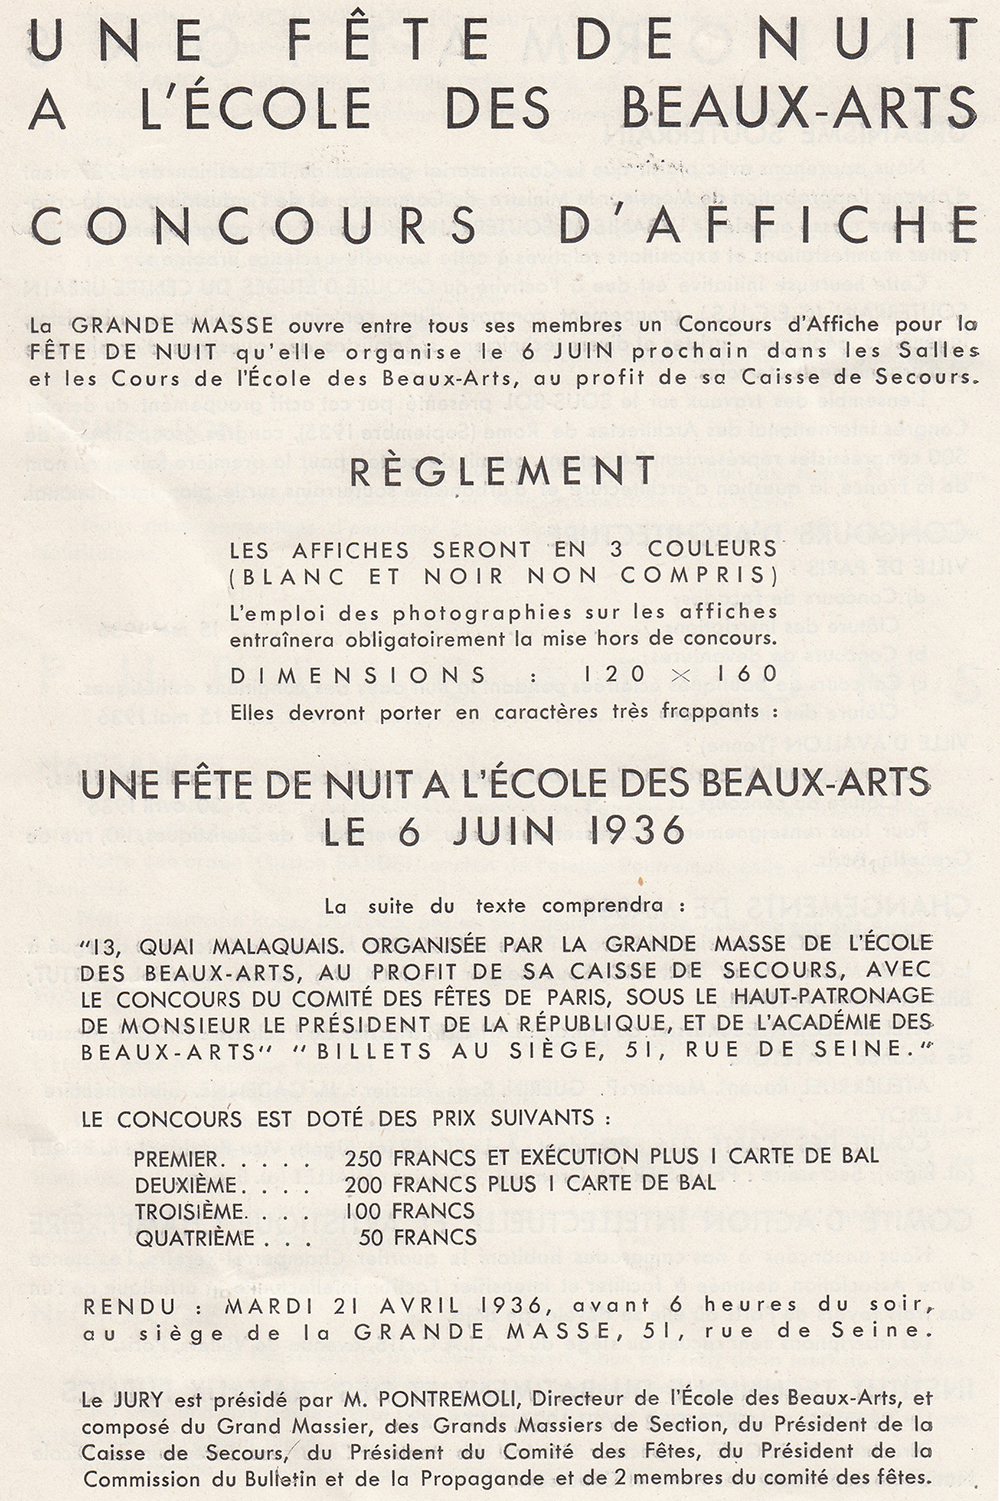 193603_Bulletin-GMBA_Reglement-concours-affiches.jpg